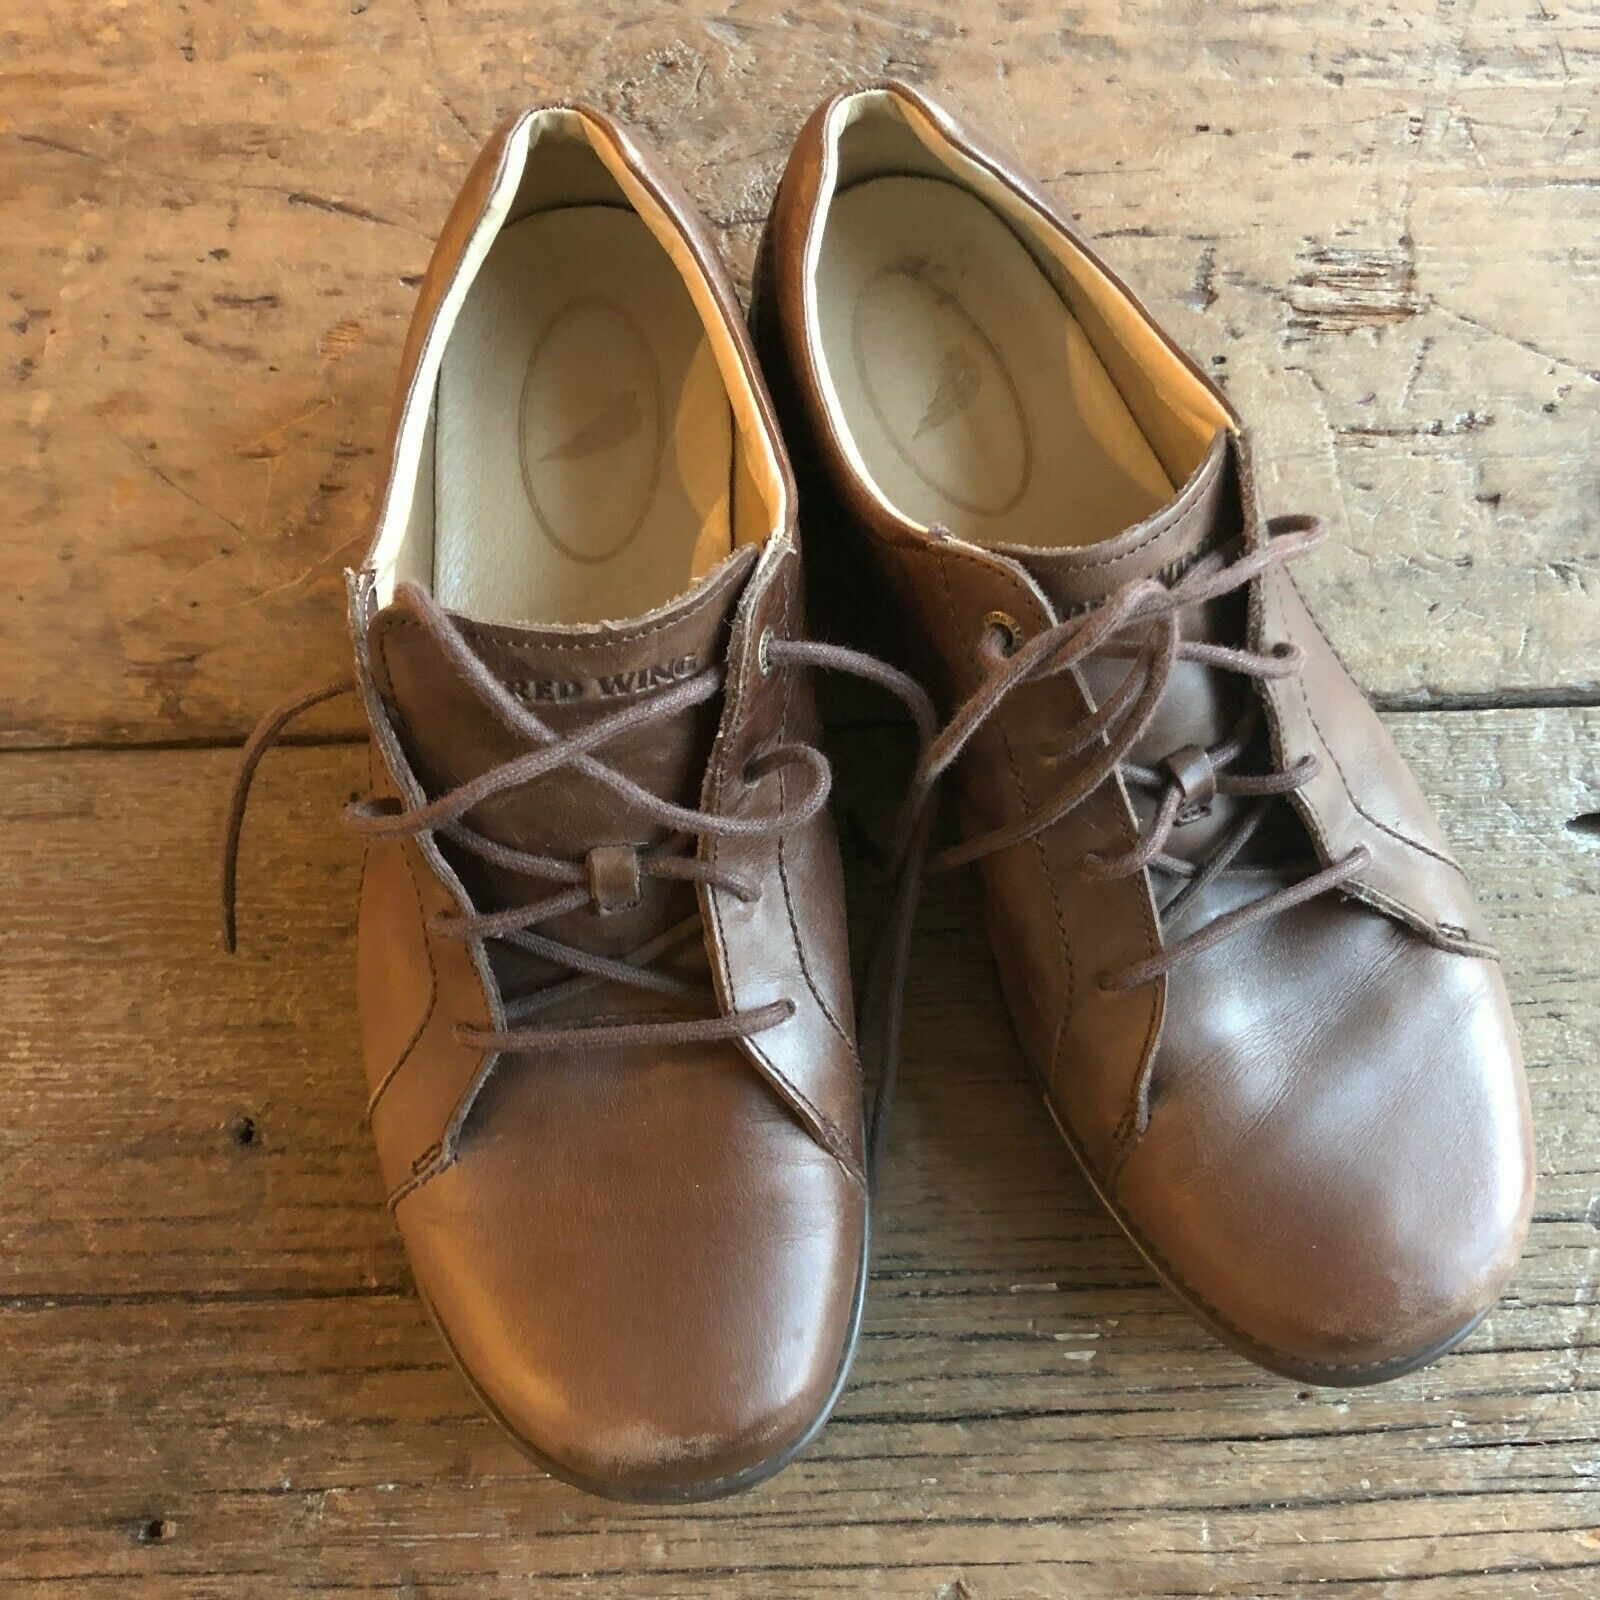 Red Wing Womens Brown Oxfords Flats Size 9.5W Lace Up shoes Loafers